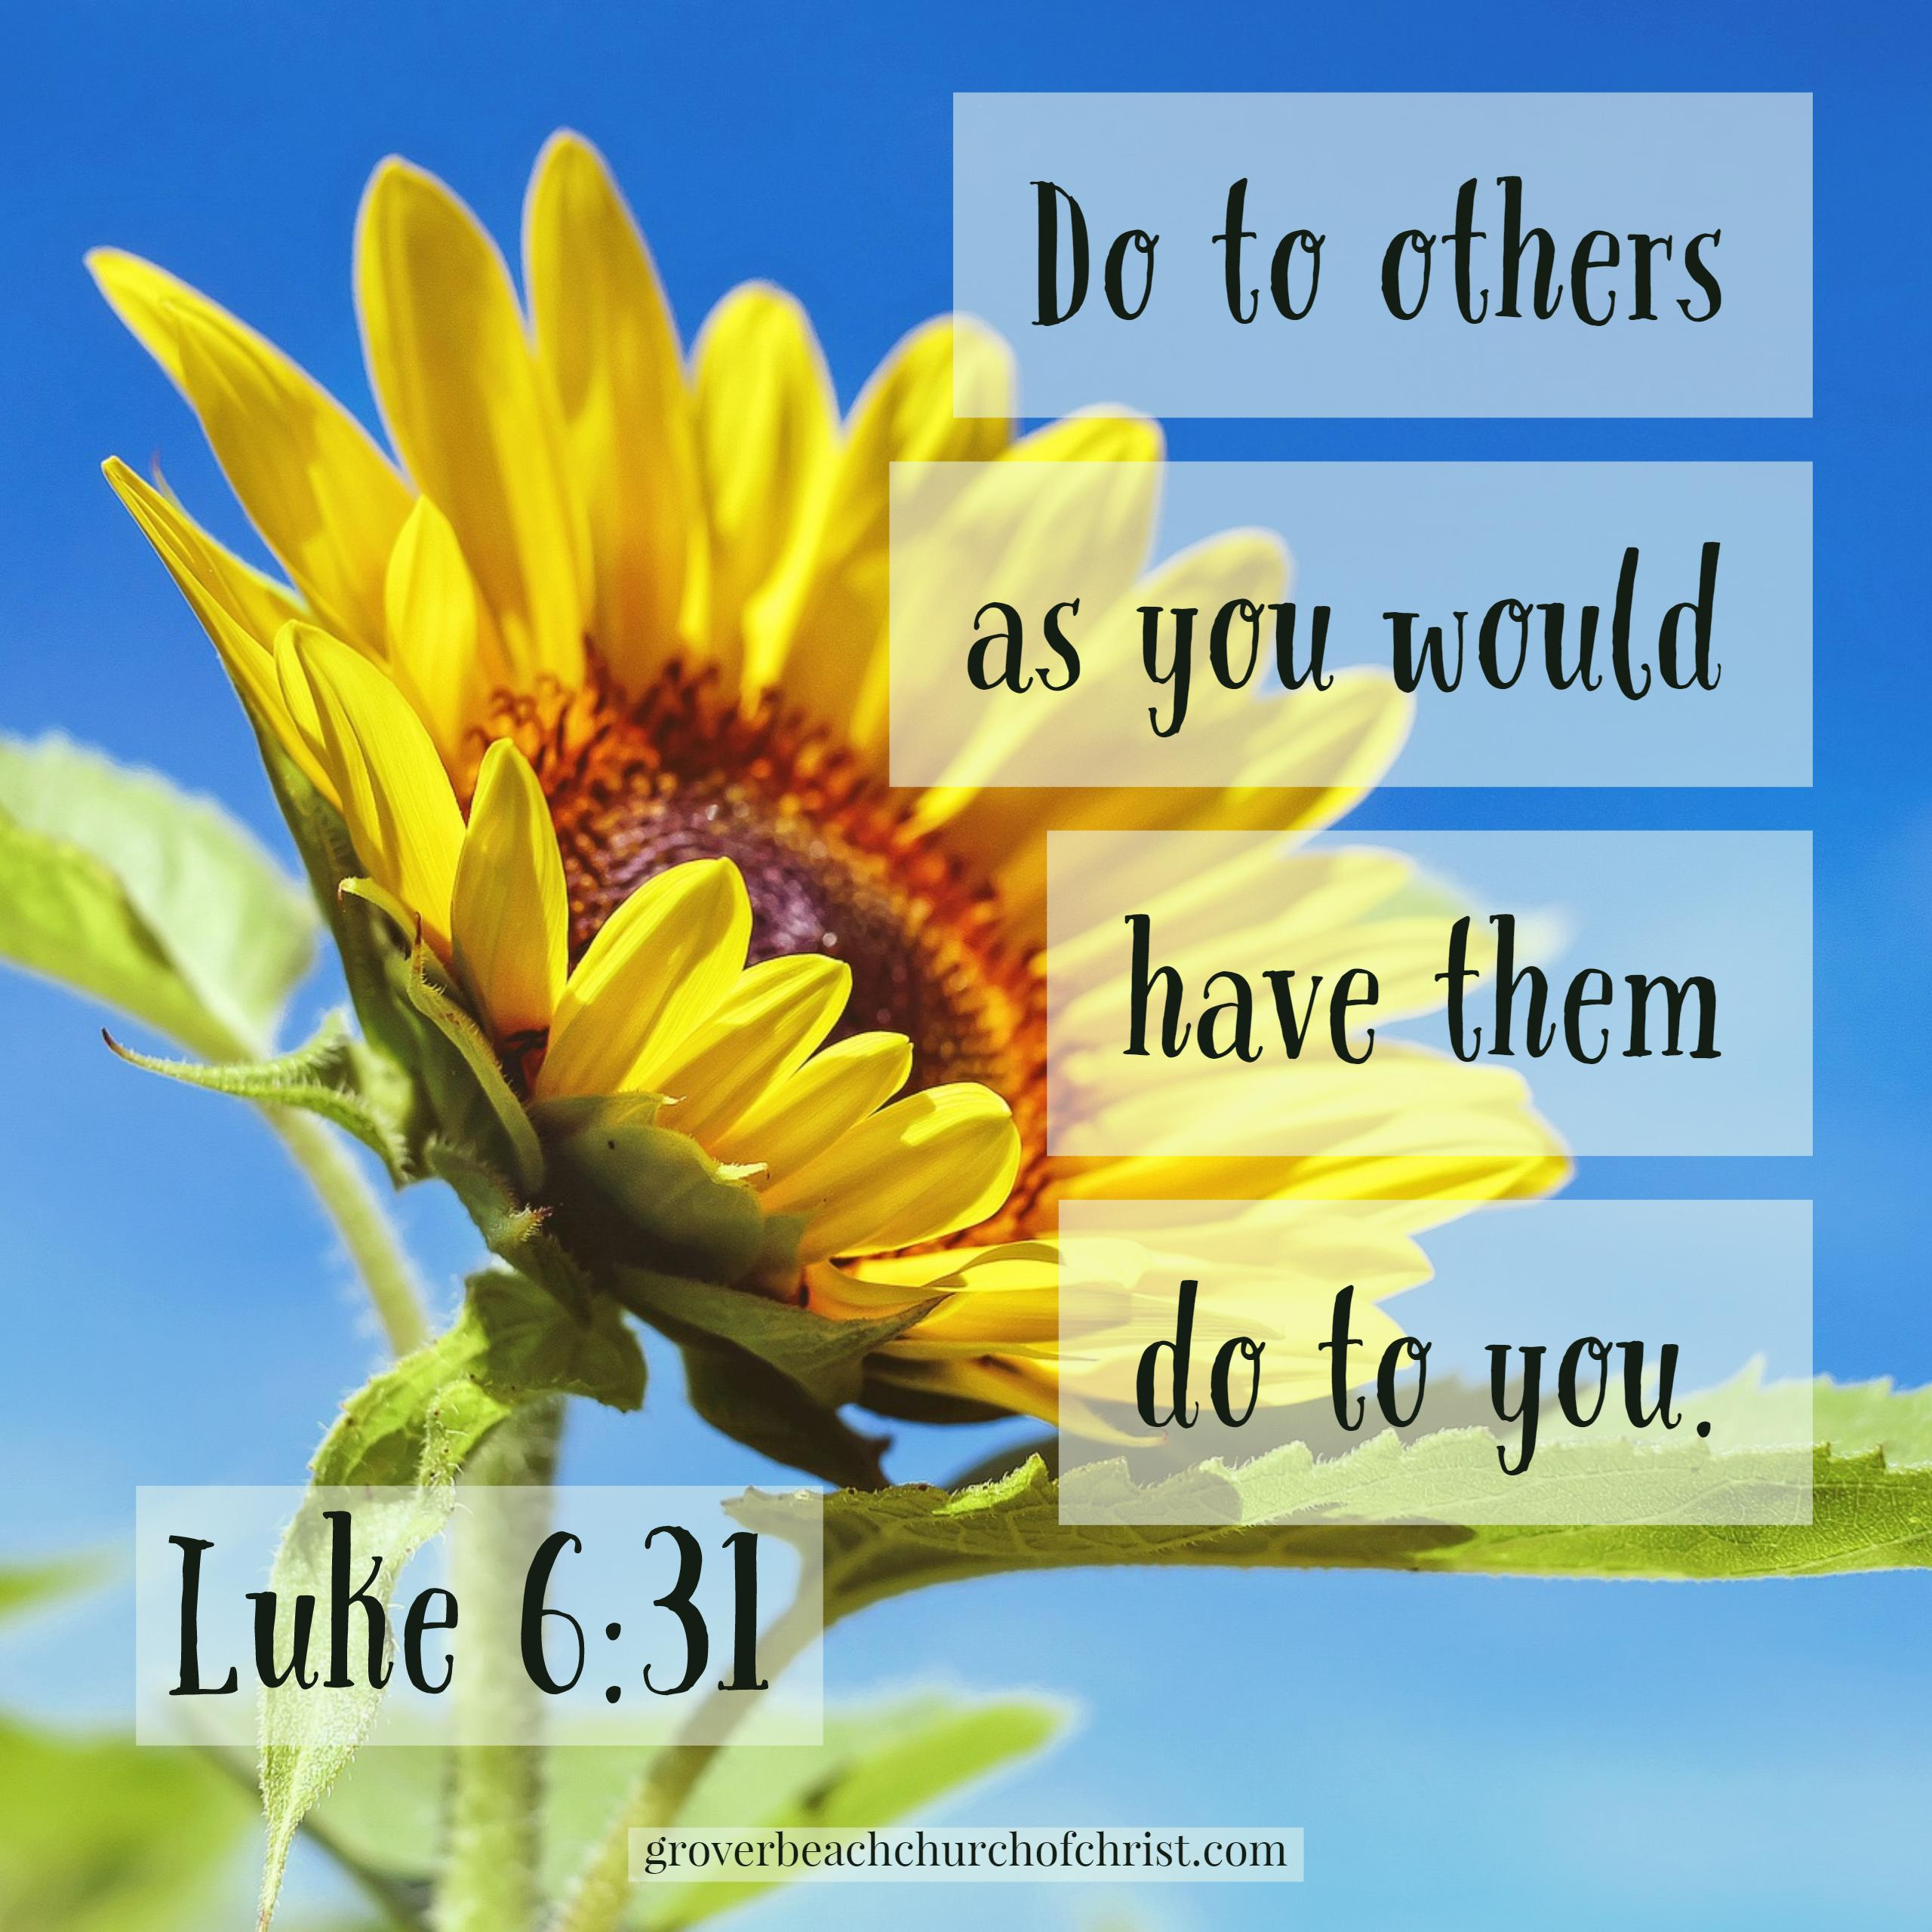 Luke 6:31 Do to others as you would have them do to you